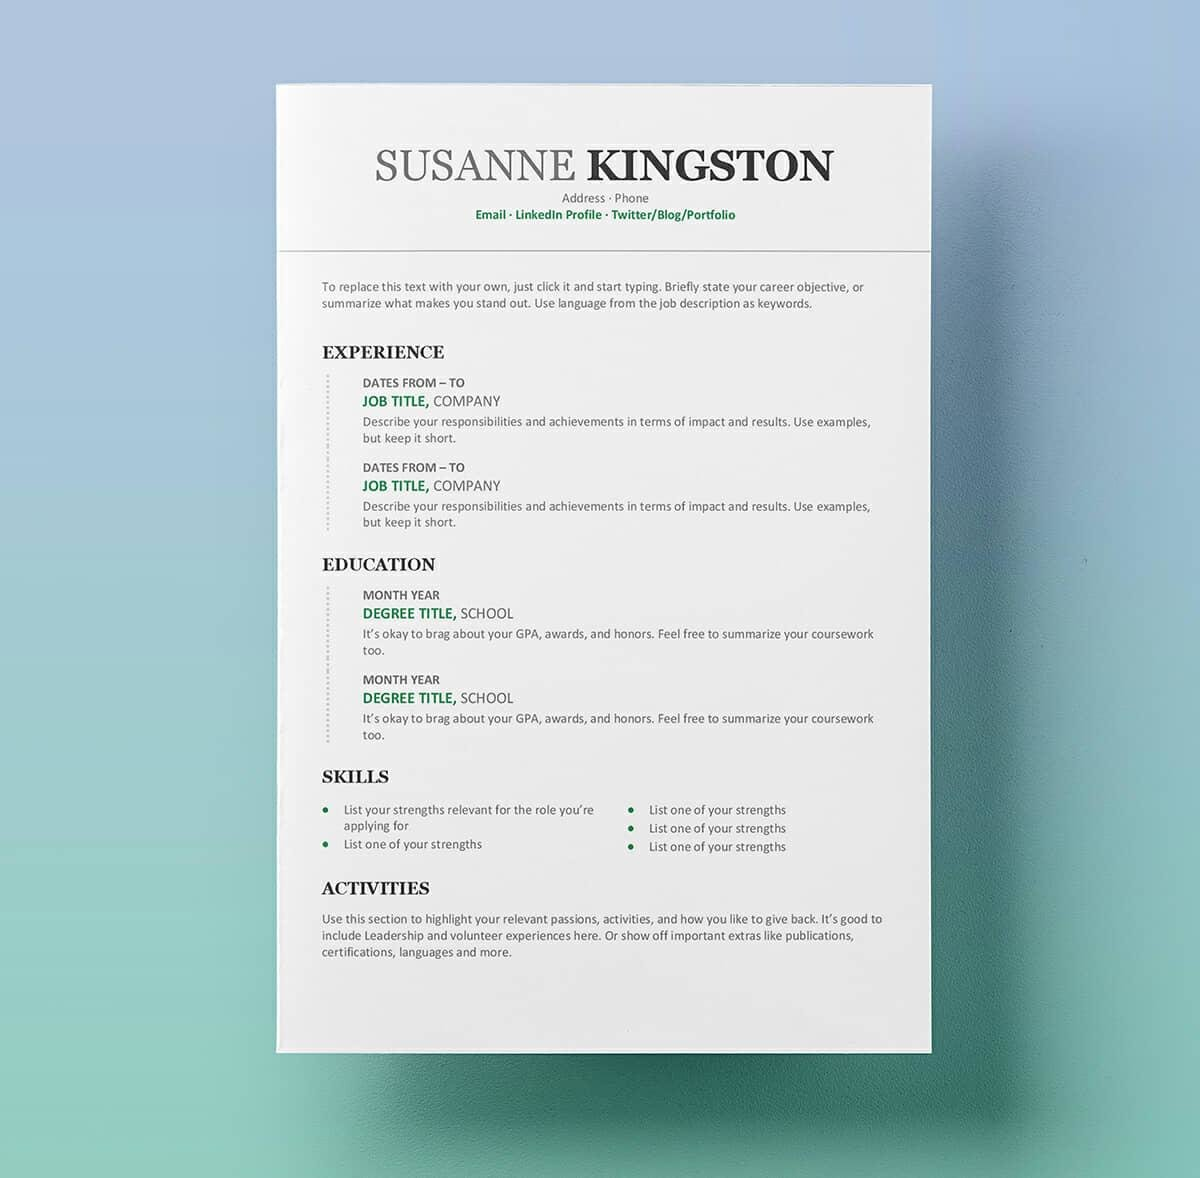 resume templates for word free 15 examples for download - Free Resume Templates 2017